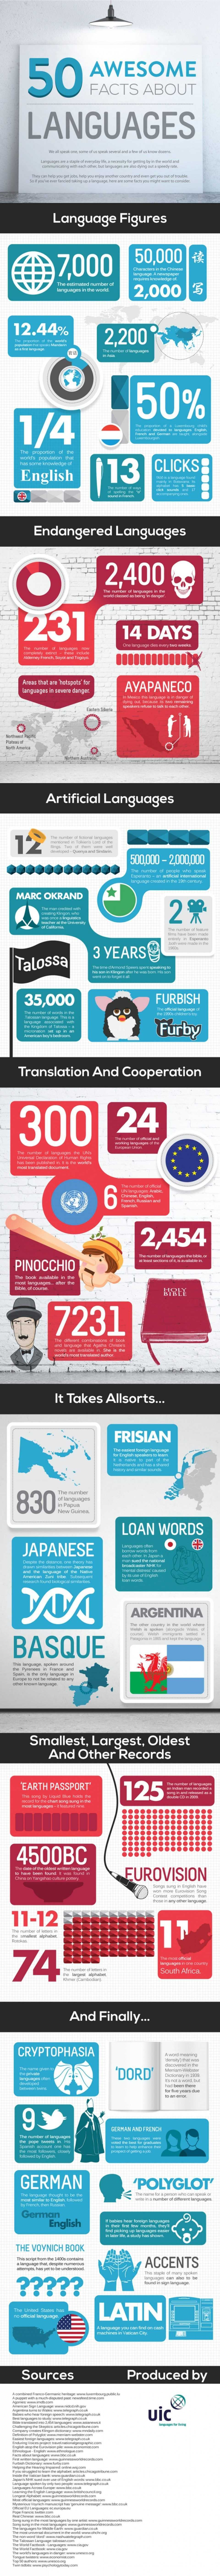 50 Things You Probably Didn't Know About Languages